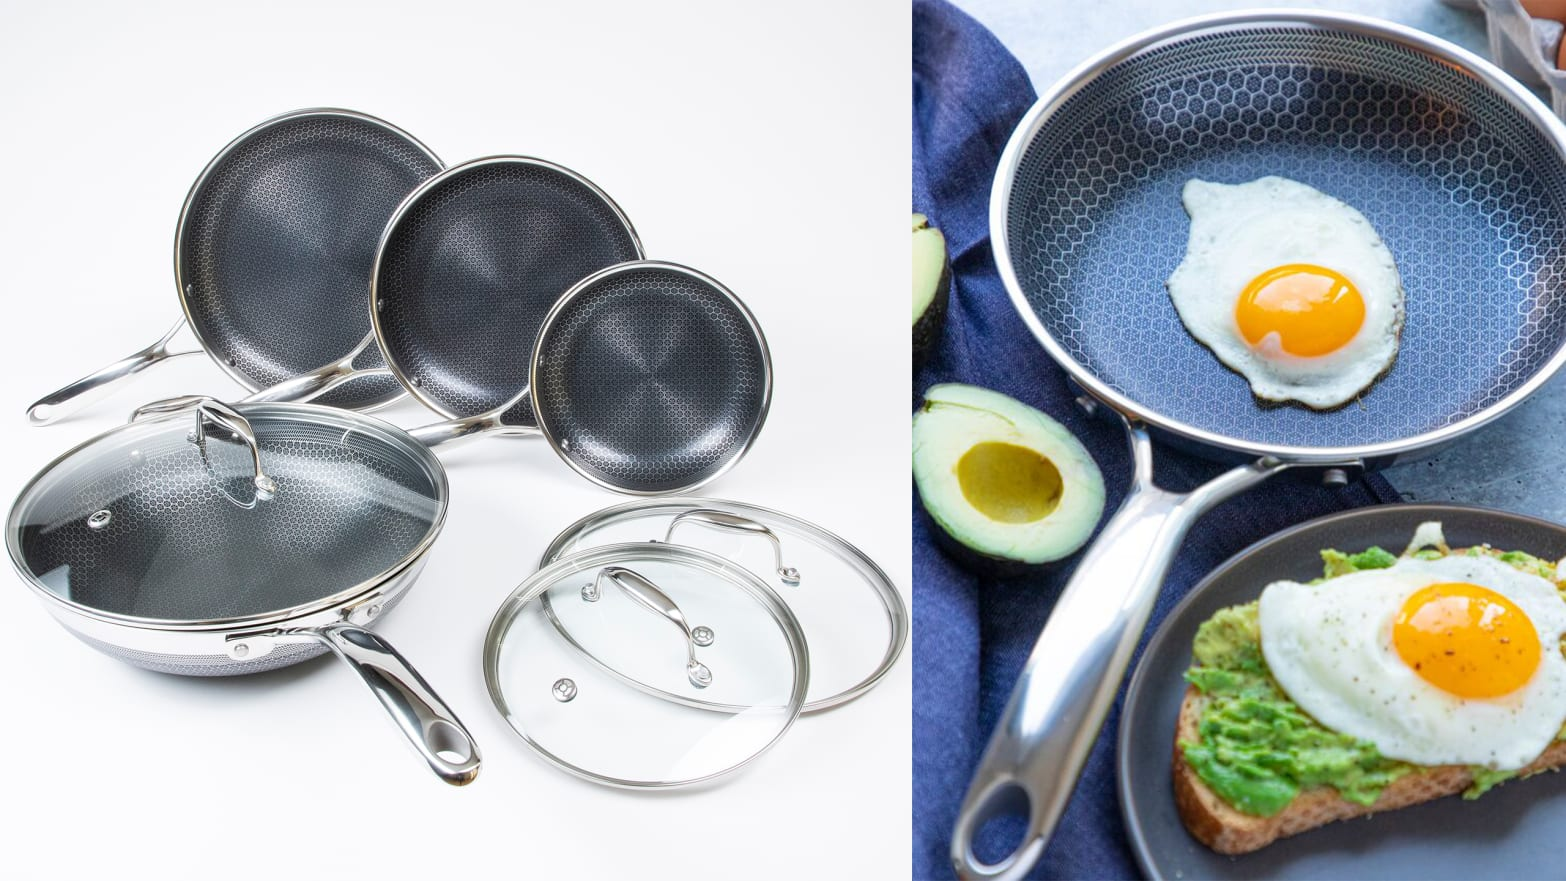 The Brand New Hexclad Pans (and Wok) Set Is One of 2019's Best Cookware Upgrades